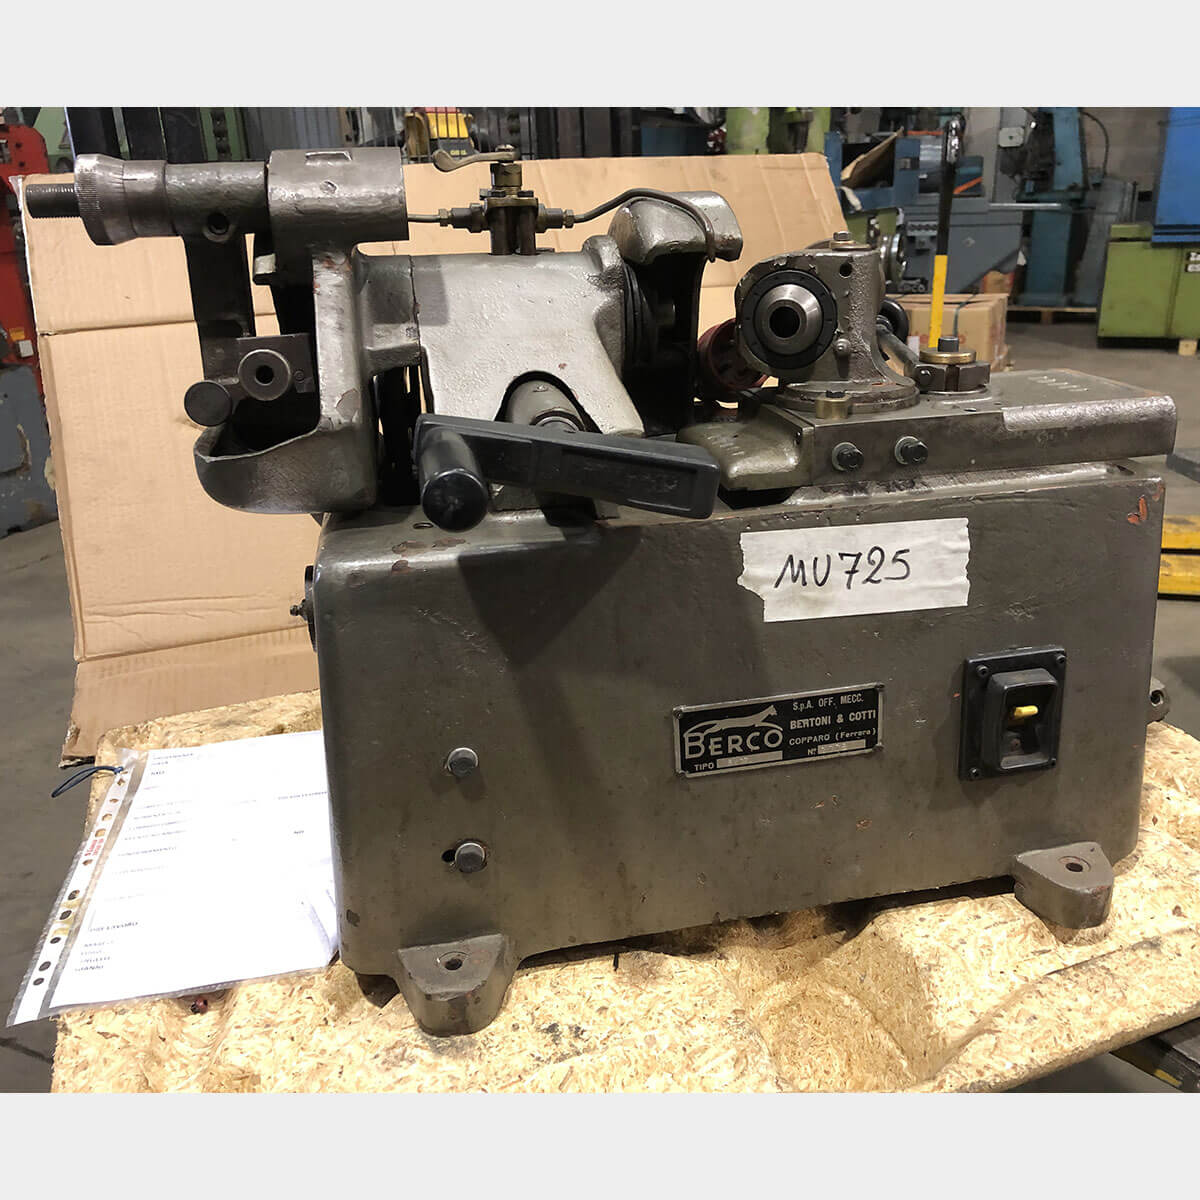 MU725 - BERCO RV17 Used Valve Grinding Machine